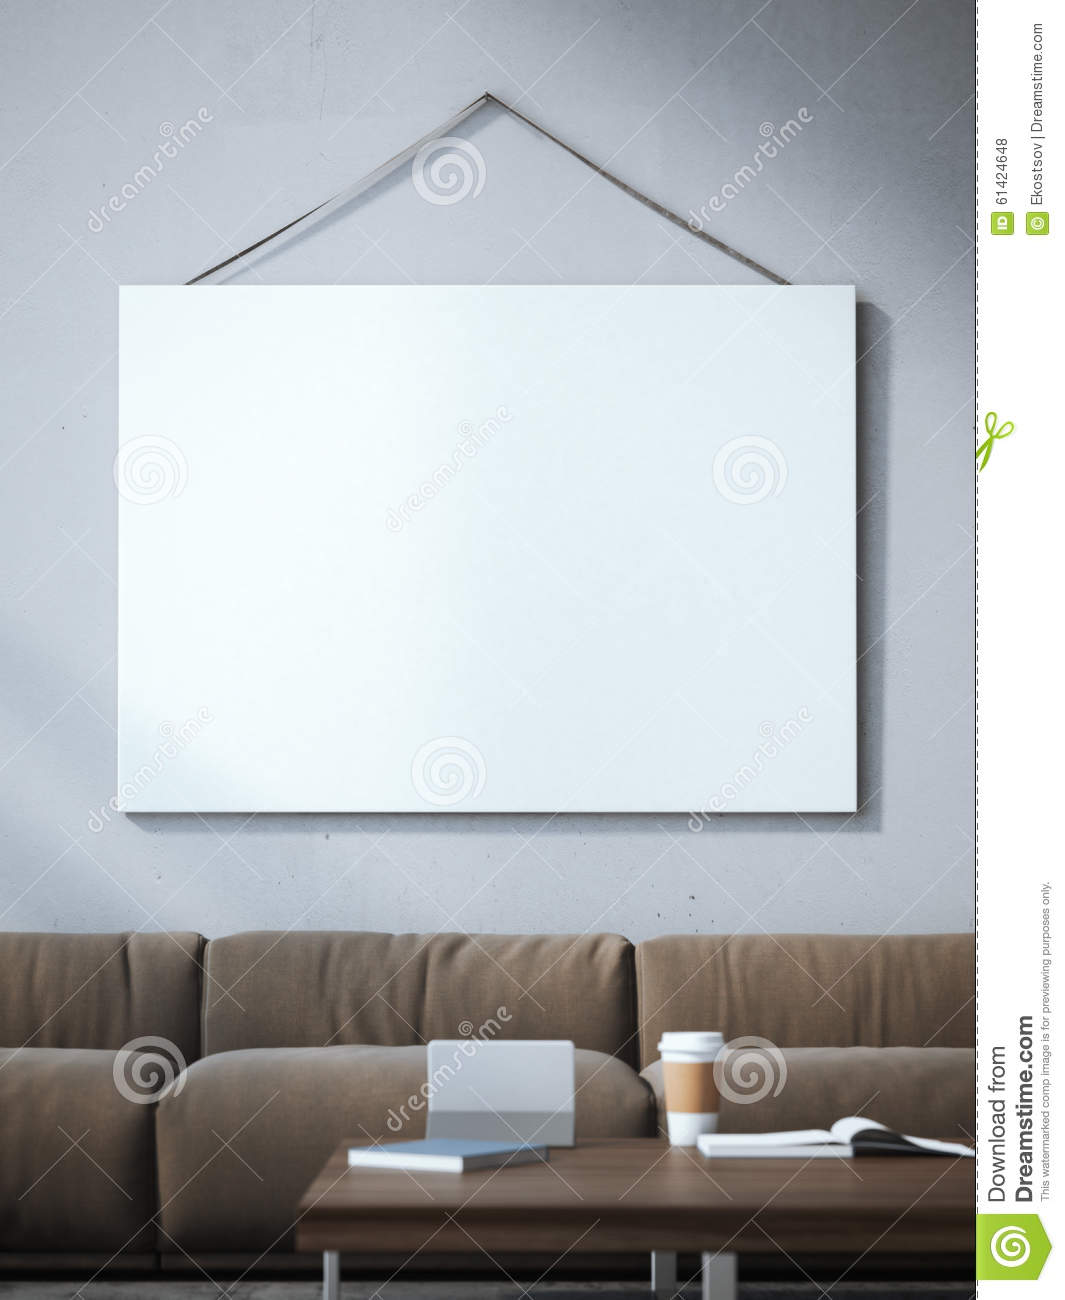 blank canvas in interior with sofa 3d rendering stock photo image